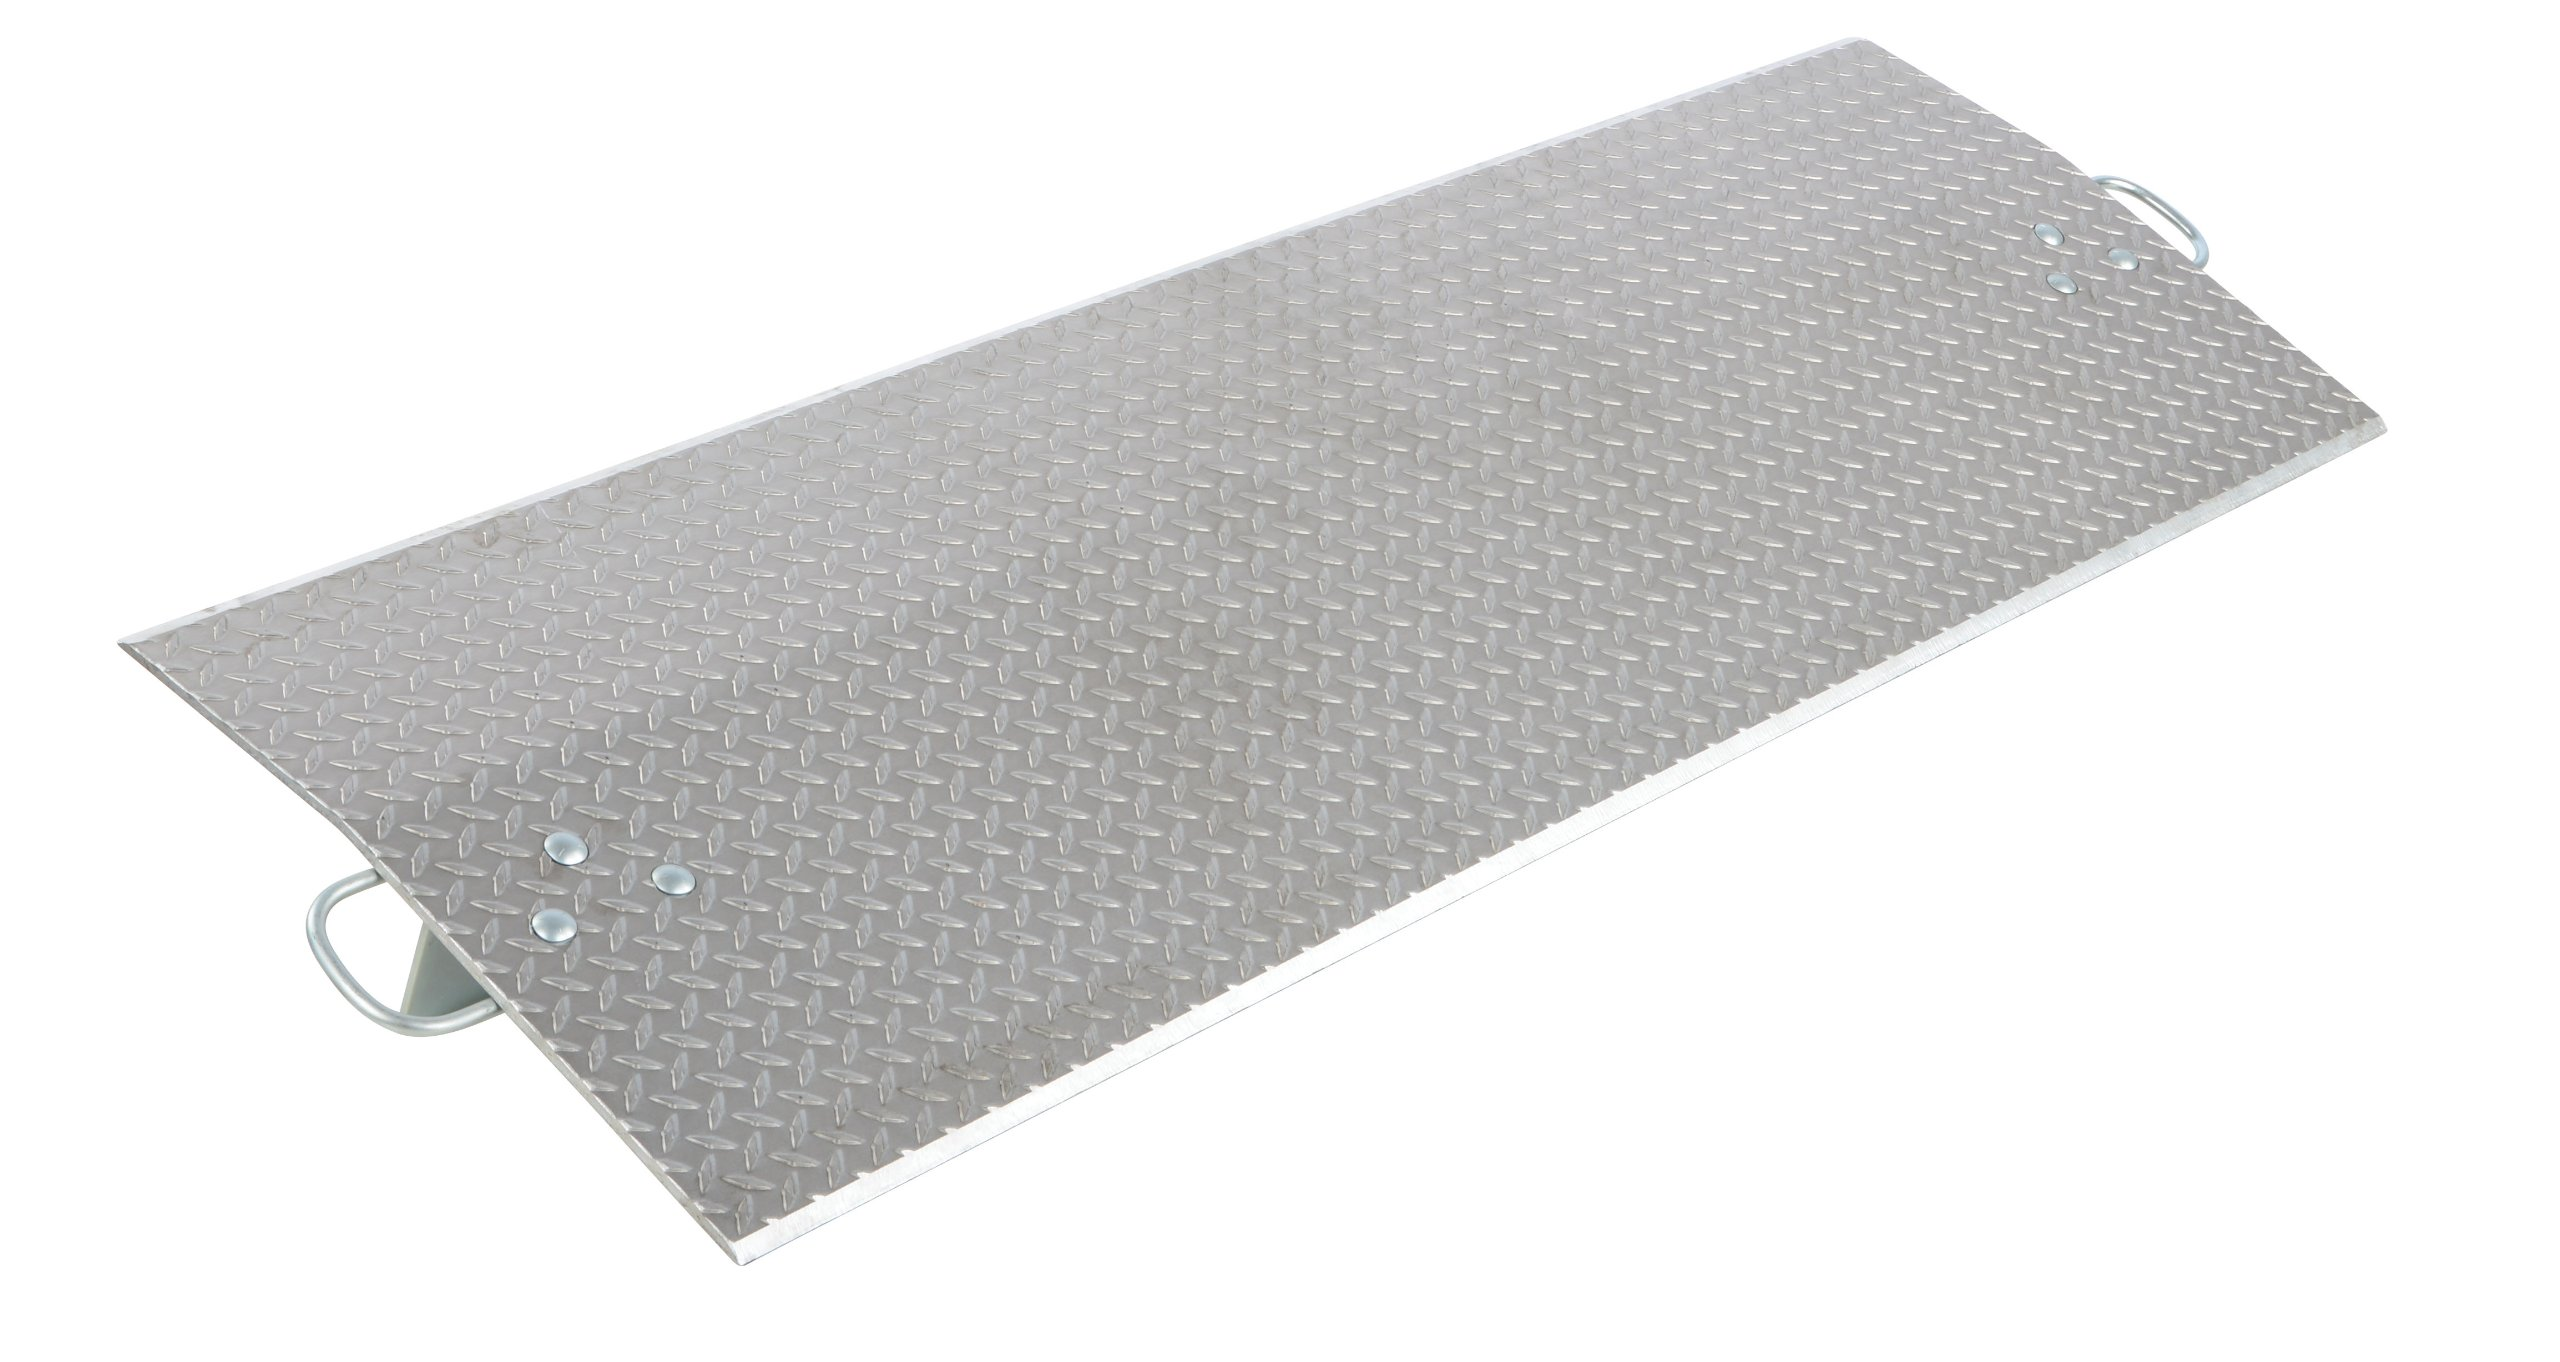 Vestil E-7230 Aluminum Economizer Dock Plate, 5,400-lb. Capacity, 30'' Length, 72'' Usable Width, 4'' Height Difference, 3/8'' Plate Thickness